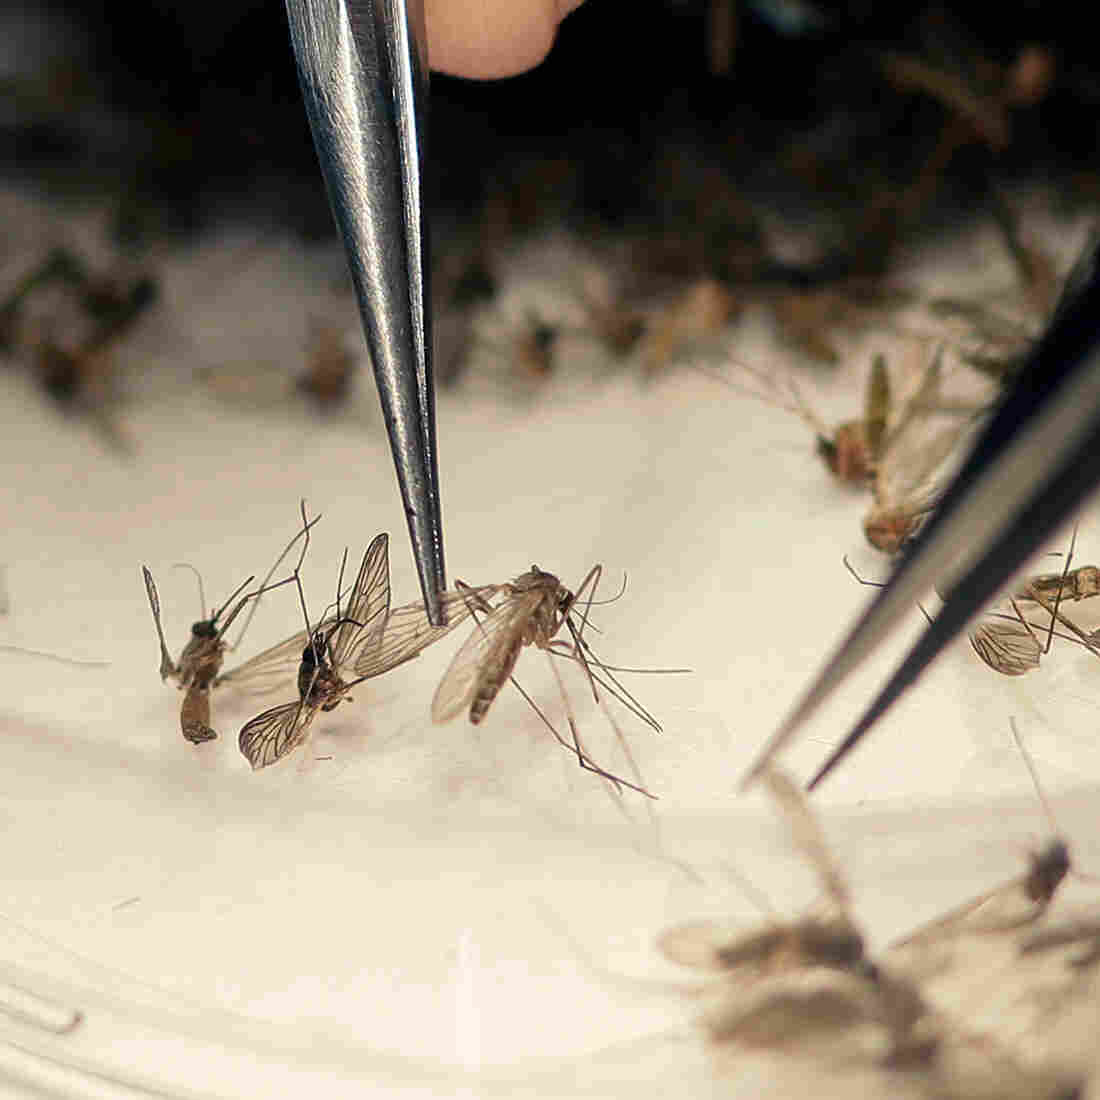 Congress Ends Spat, Agrees To Fund $  1.1 Billion To Combat Zika